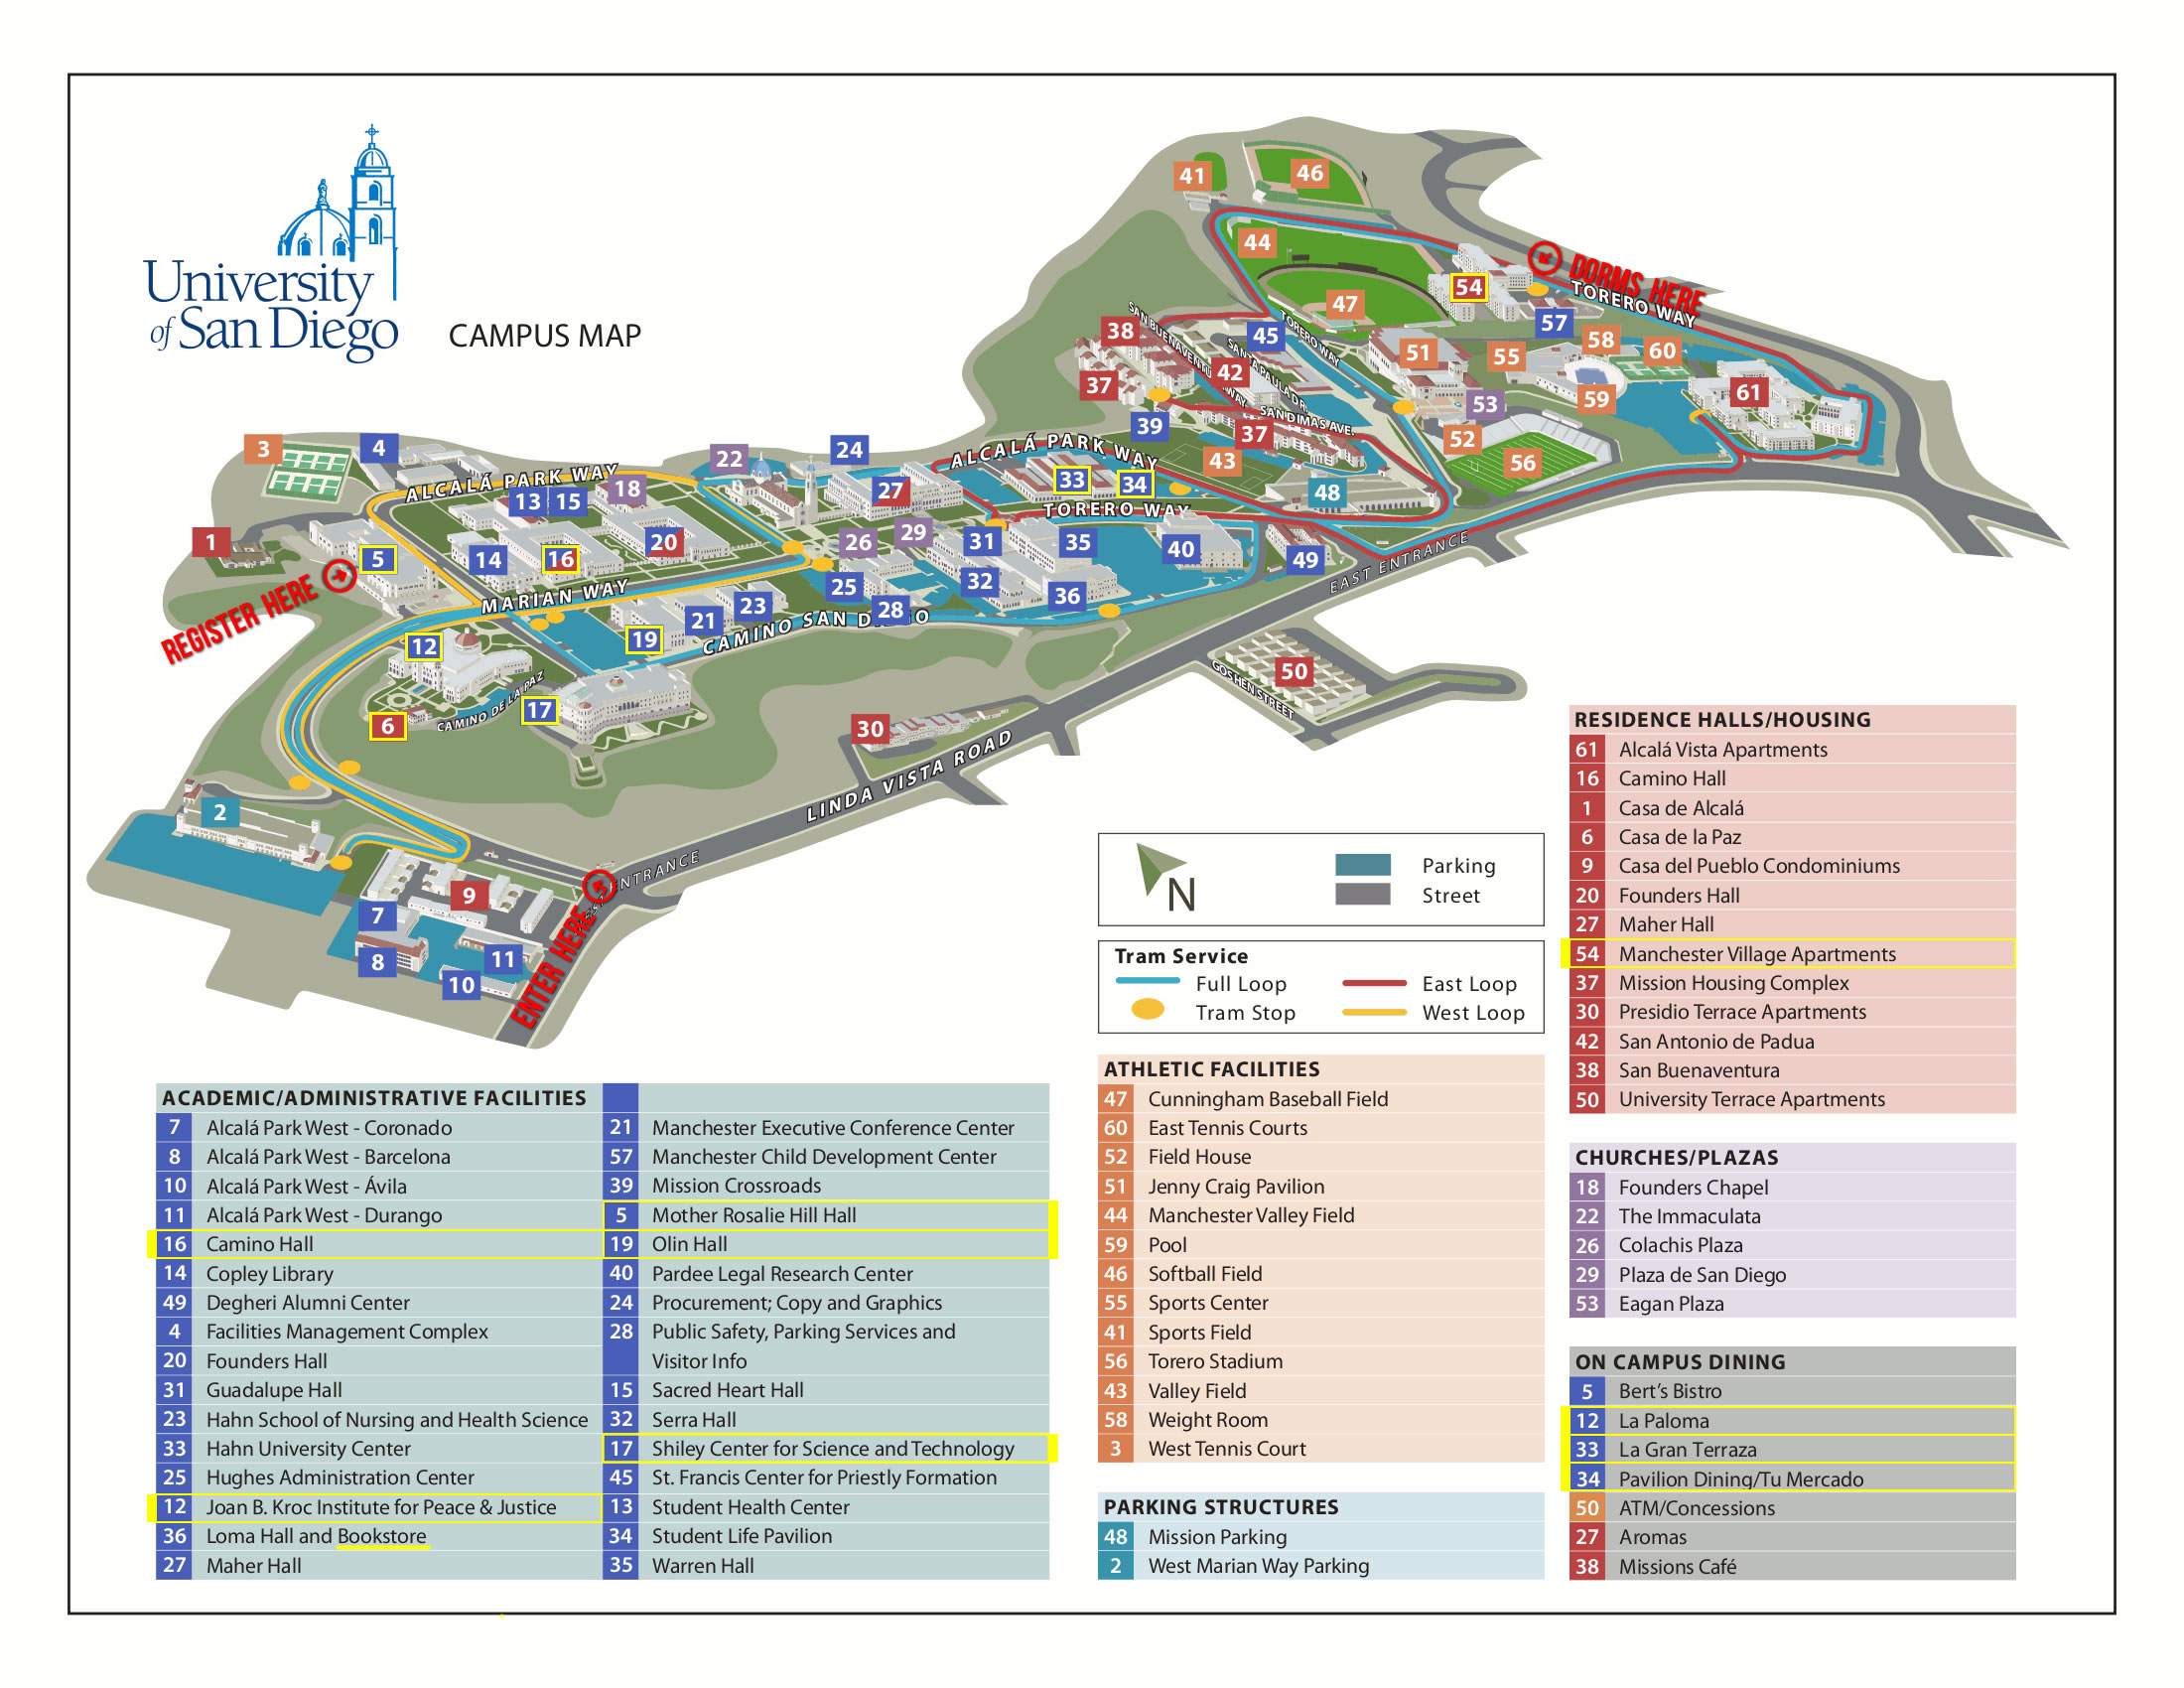 Usd Campus Map   CYNDIIMENNA